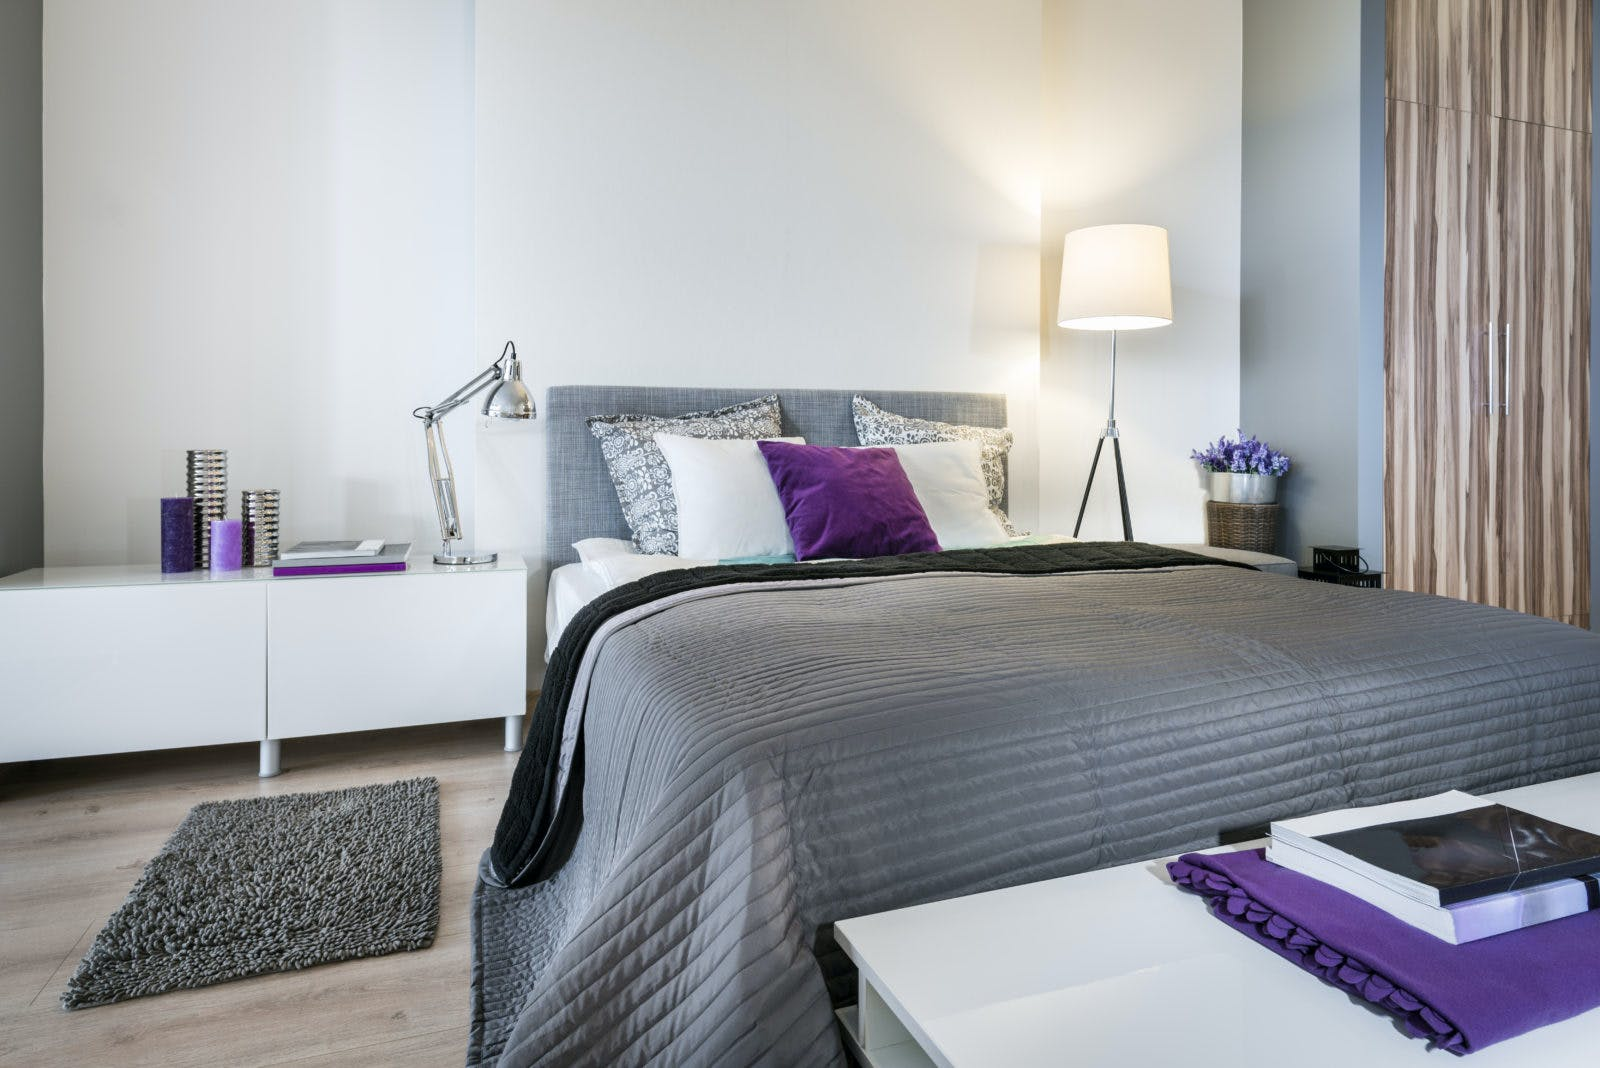 Bedroom interior with gray bed and white walls